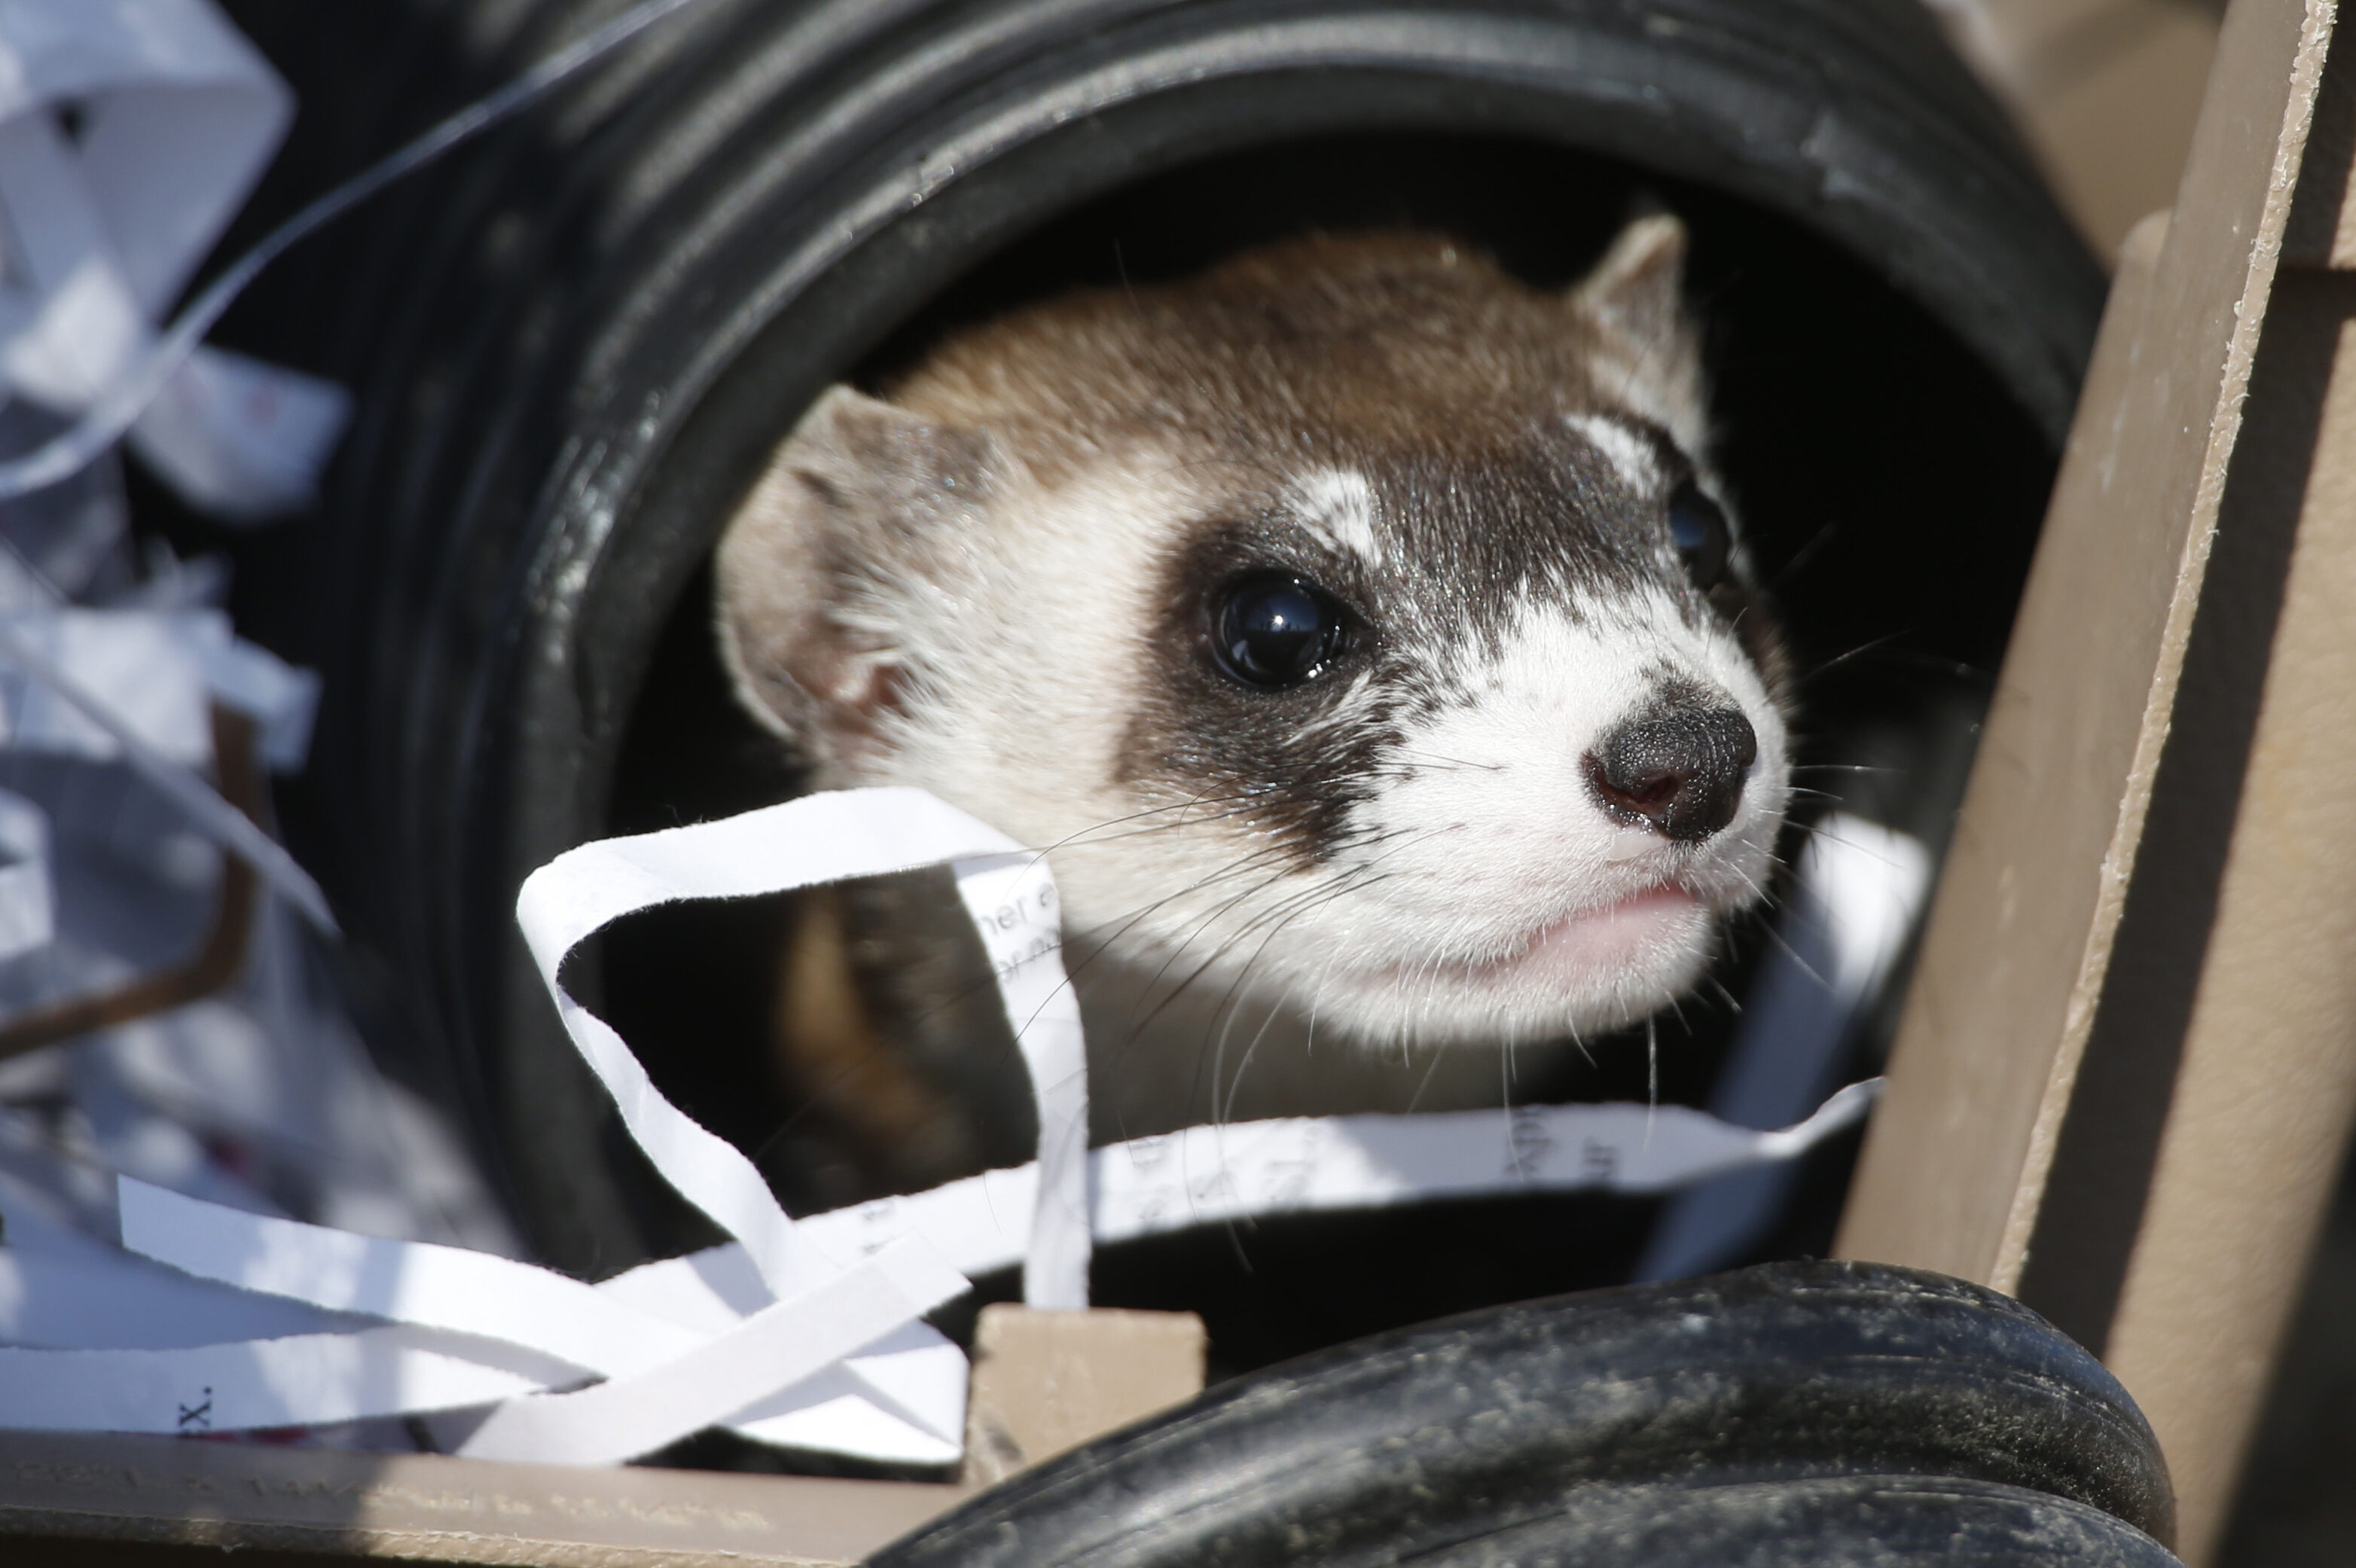 Black-footed ferret looks to leave carrier during a release of 30 ferrets by the U.S. Fish and Wildlife Service Monday, Oct. 5, 2015, at the Rocky Mountain Arsenal National Wildlife Refuge in Commerce City, Colo.